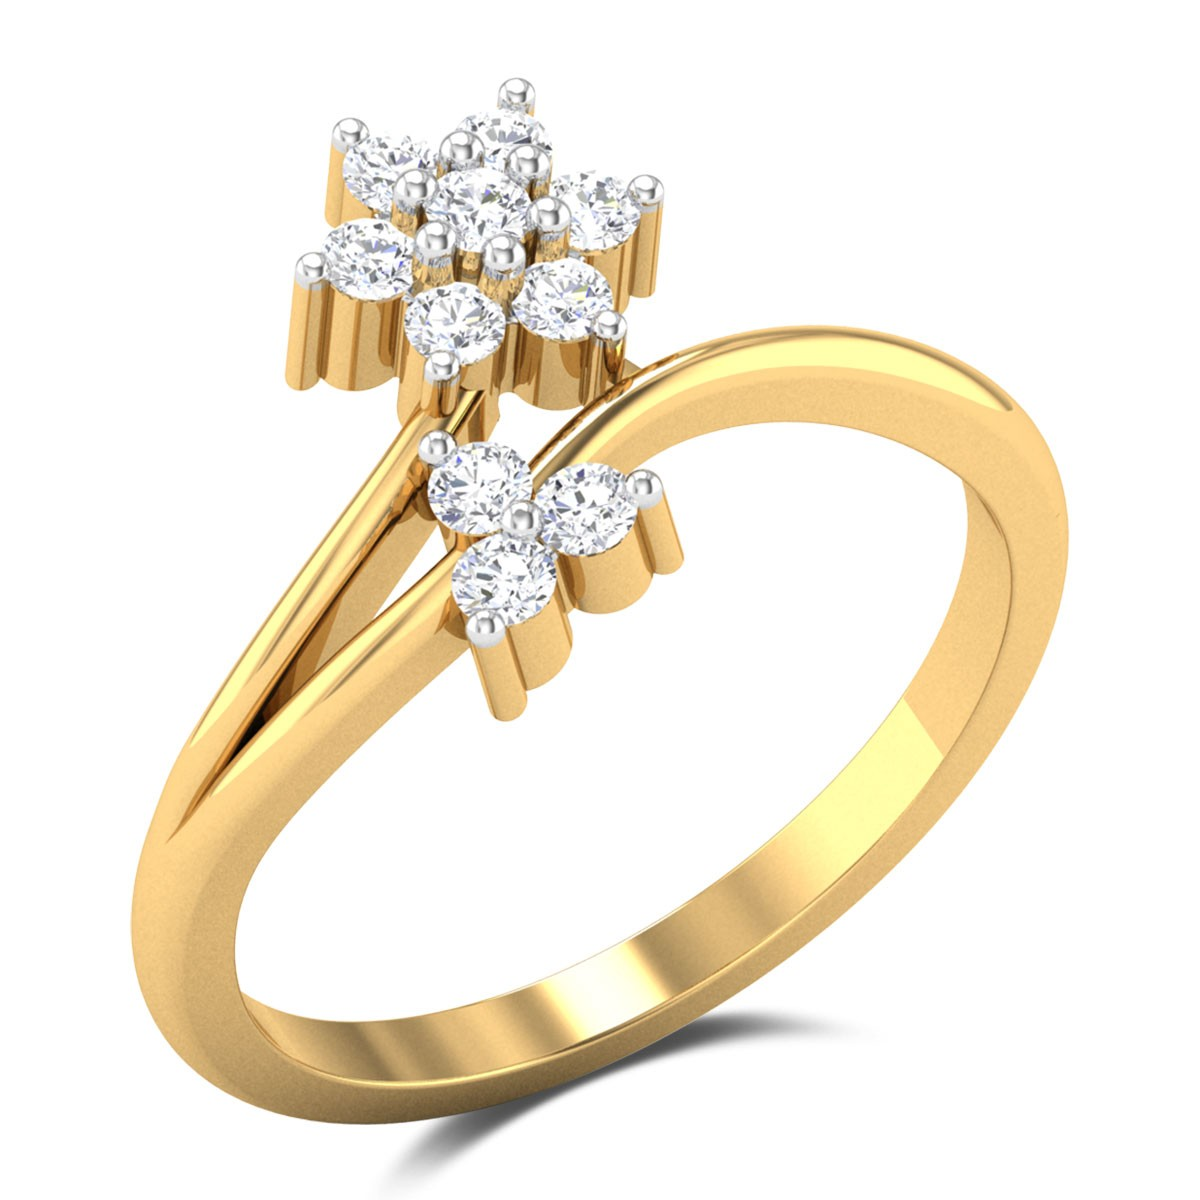 Moris Floral Diamond Ring